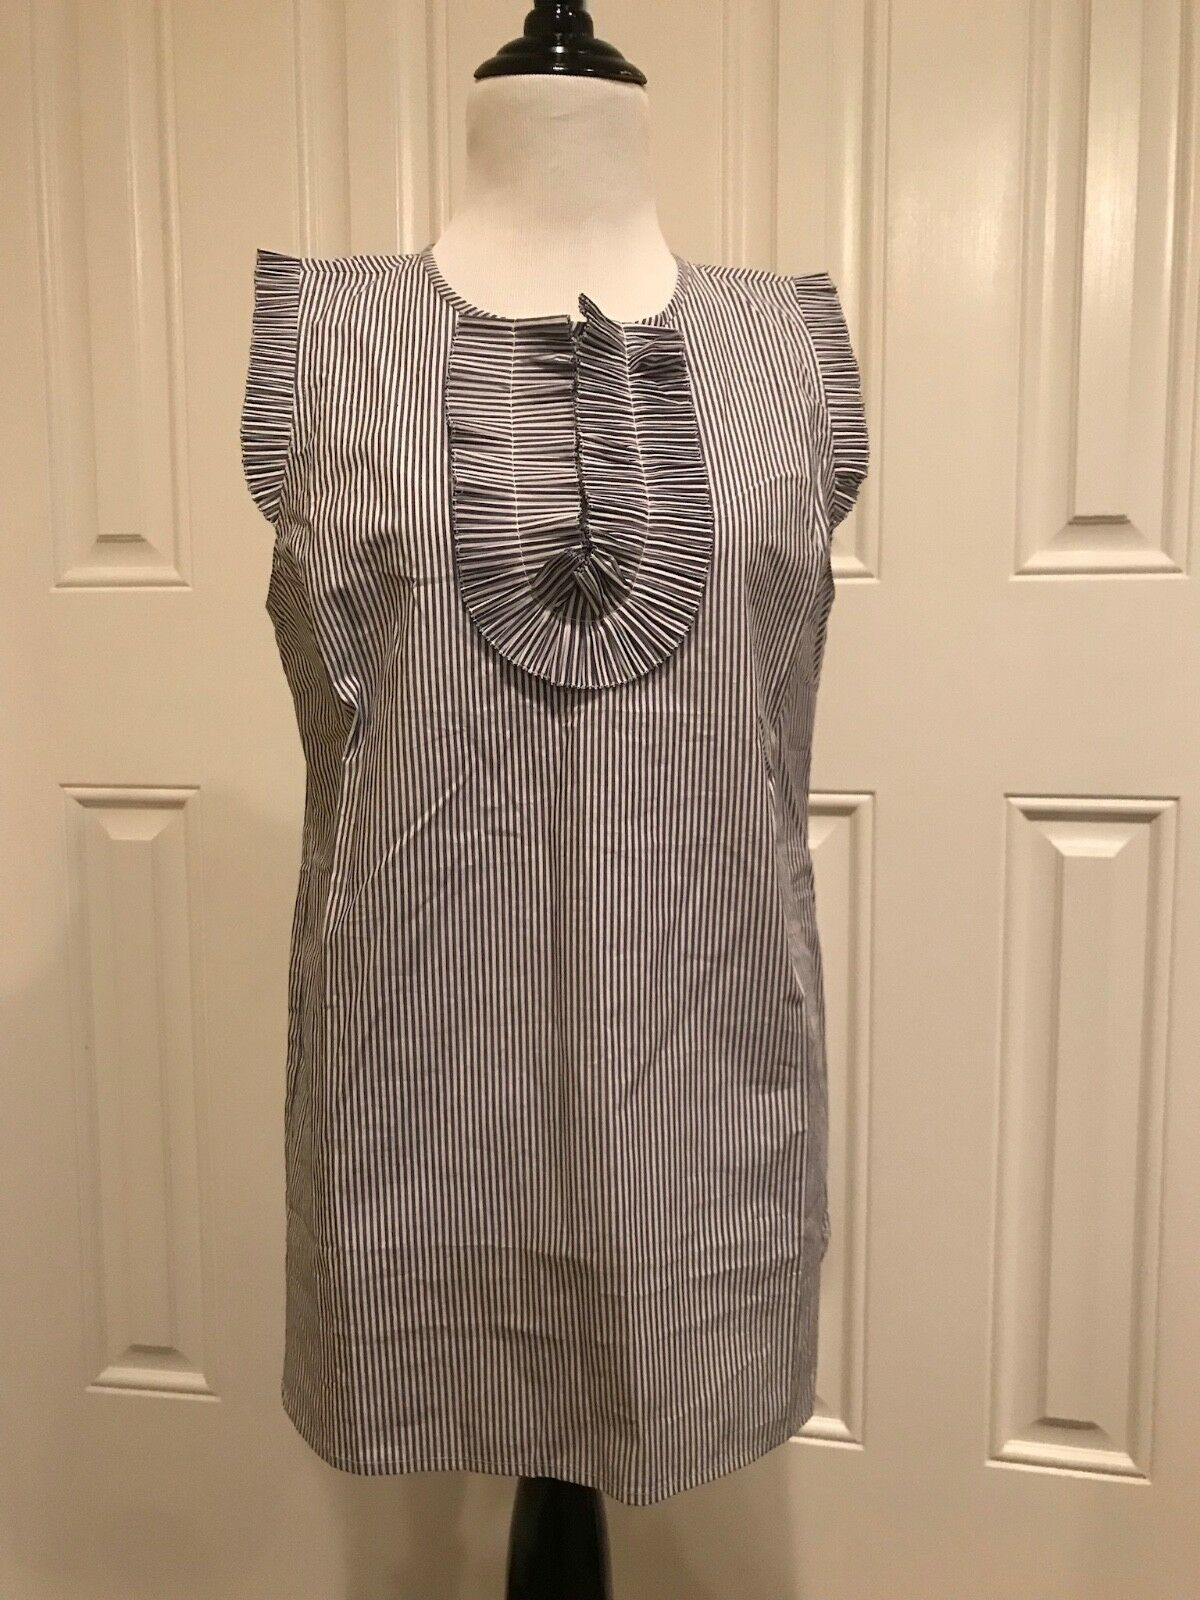 J.Crew bluee White Striped Sleeveless Top 6T NWT